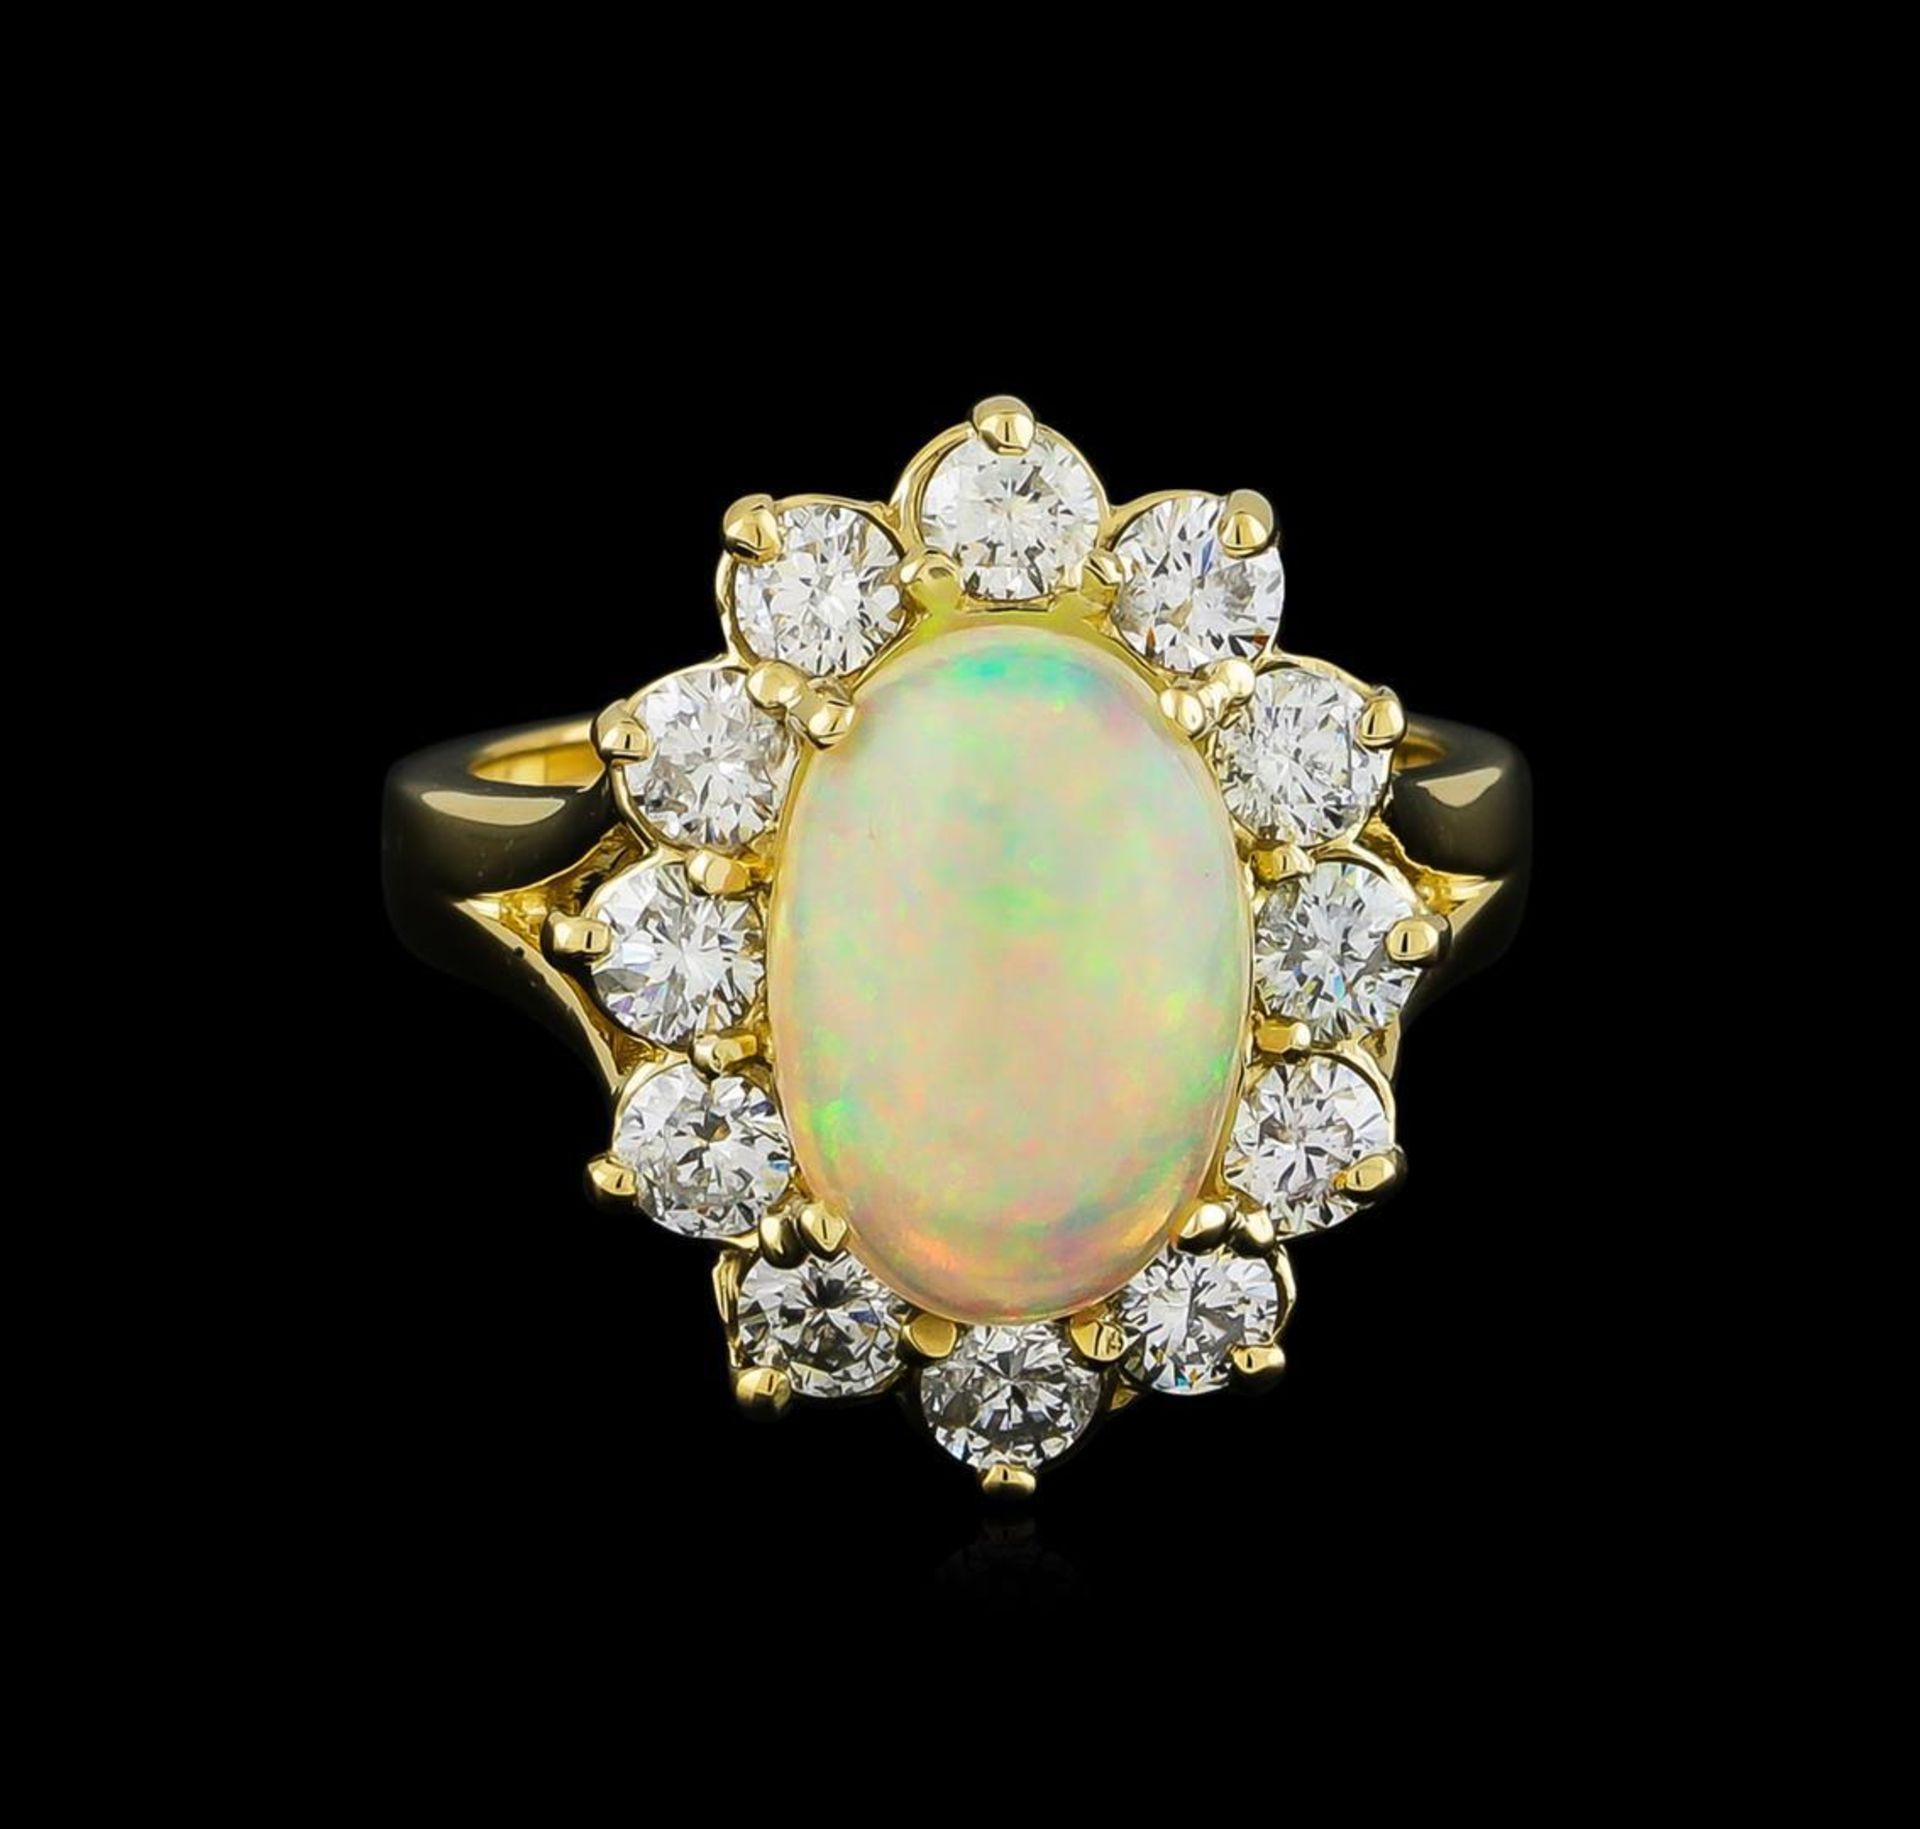 2.56 ctw Opal and Diamond Ring - 14KT Yellow Gold - Image 2 of 5